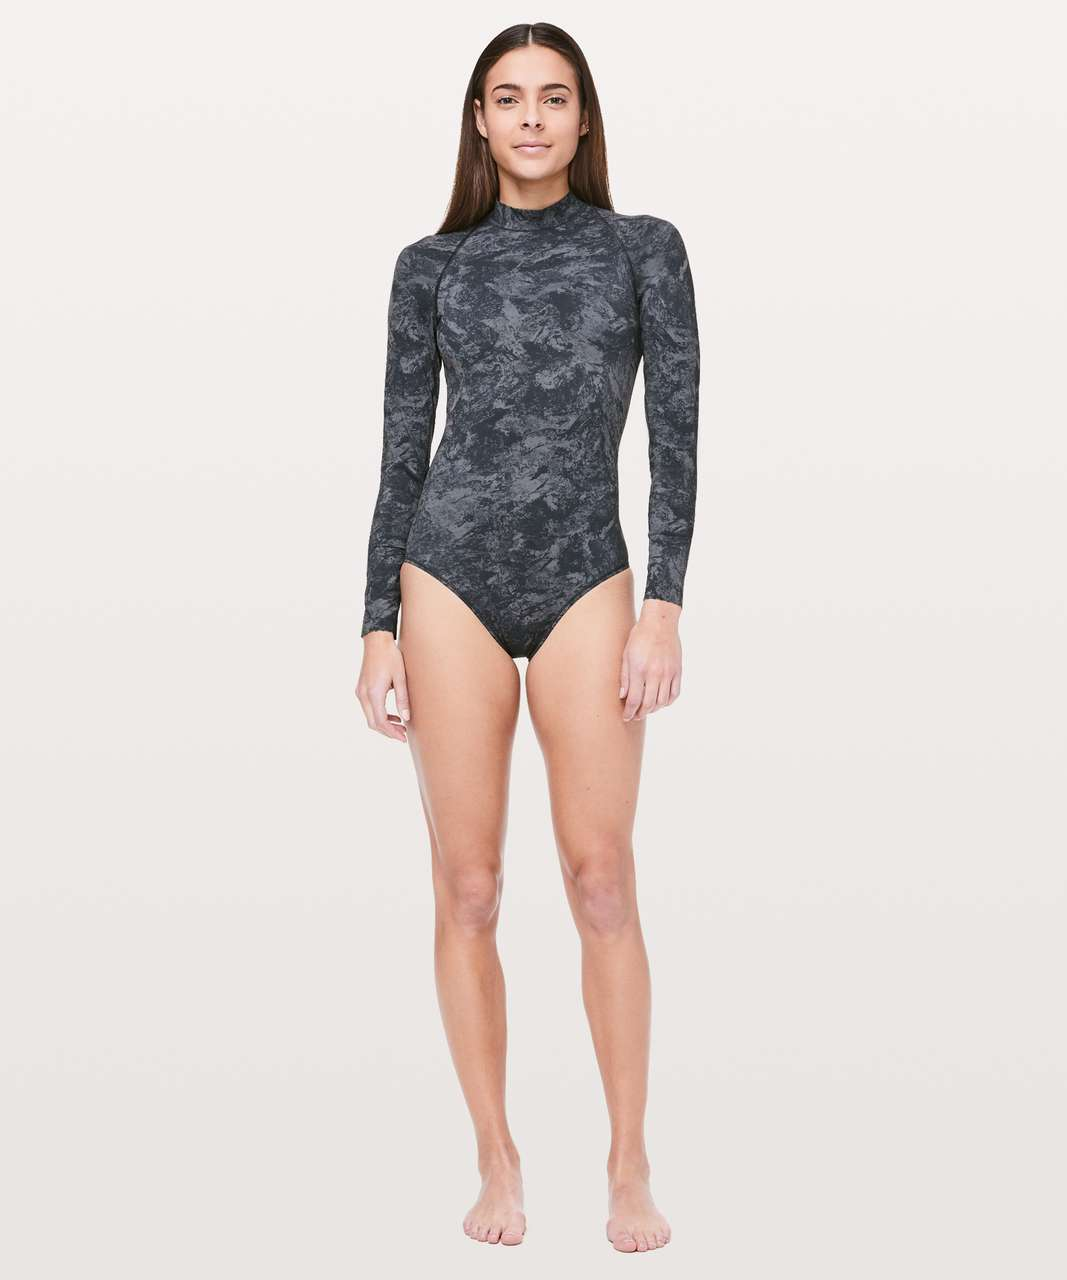 8d3ed14cf548c Lululemon Will The Wave Long Sleeve One Piece - Washed Marble Titanium Deep  Coal